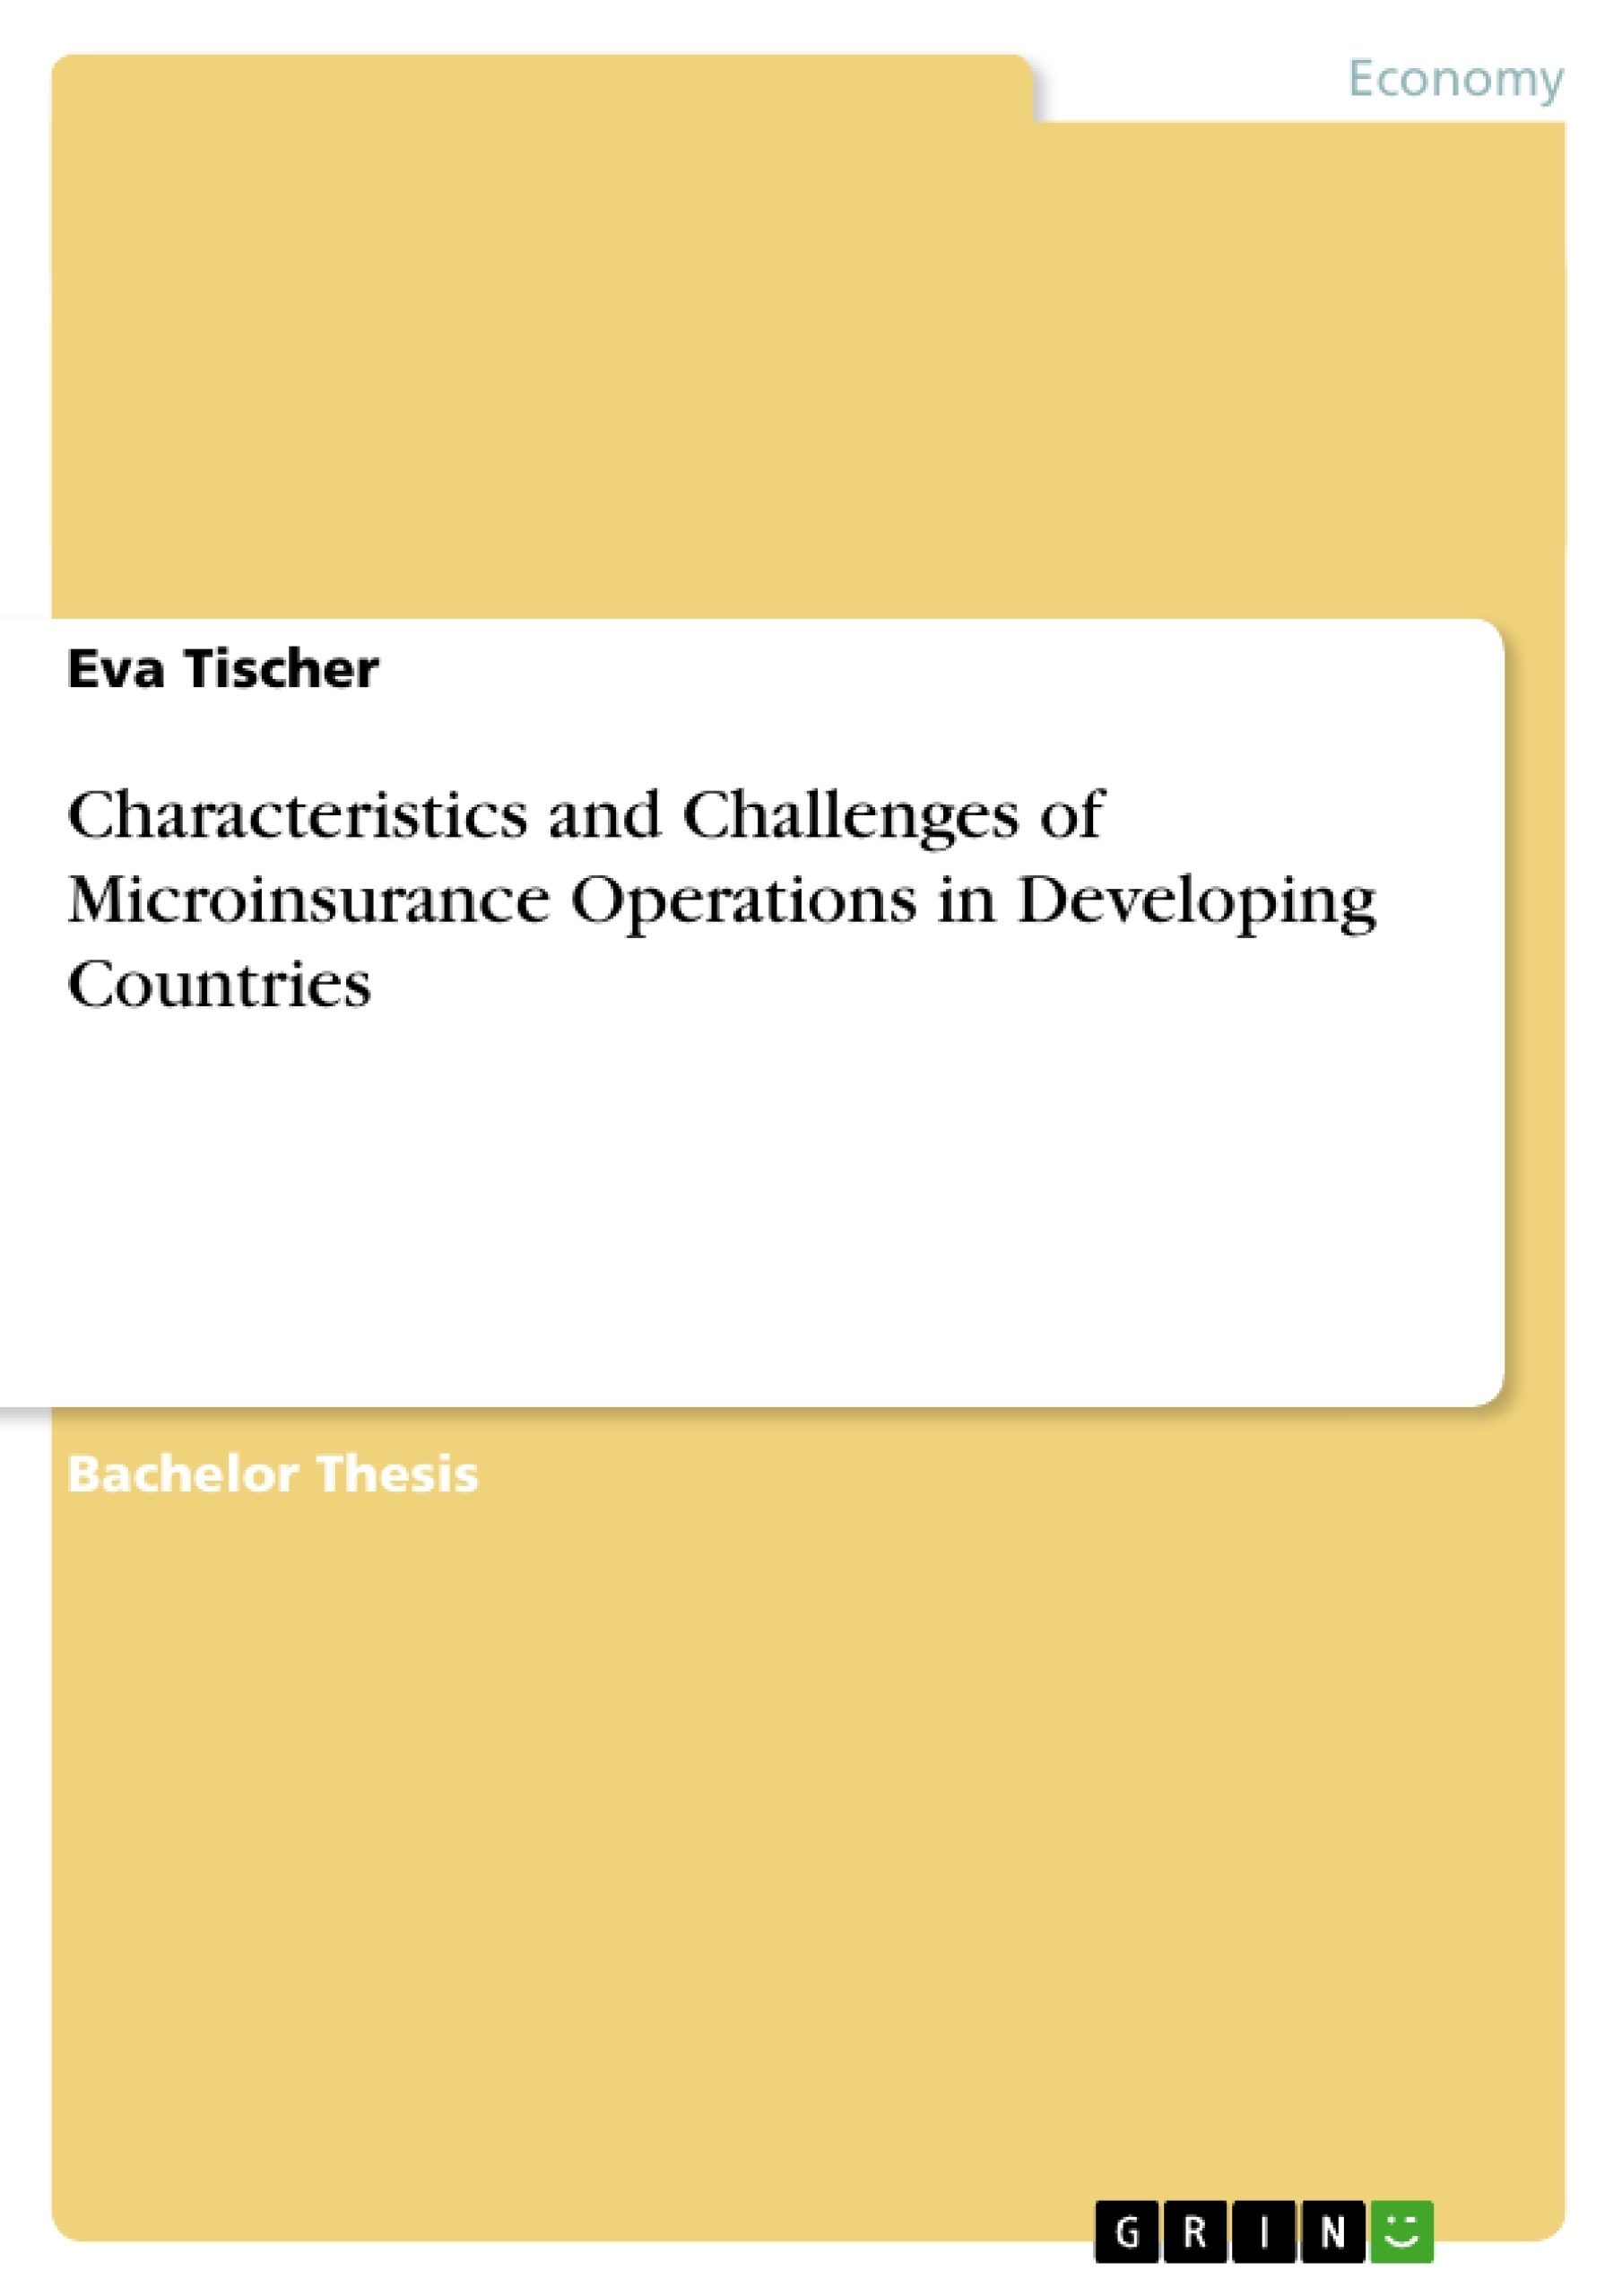 Title: Characteristics and Challenges of Microinsurance Operations in Developing Countries